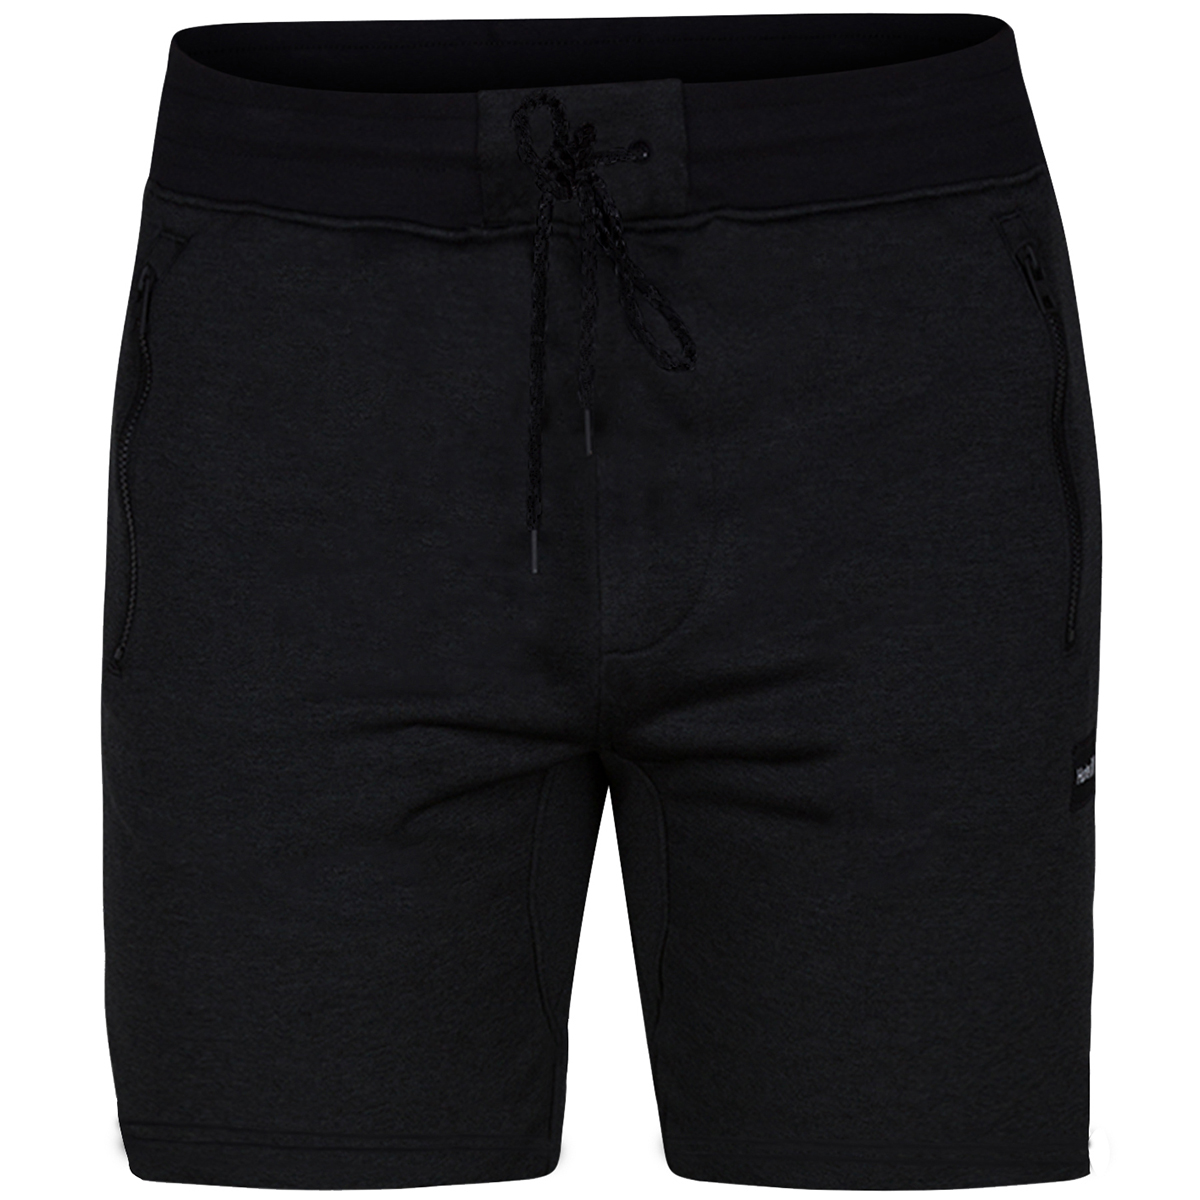 Hurley Men's Dri-Fit Disperse Shorts - Black, M